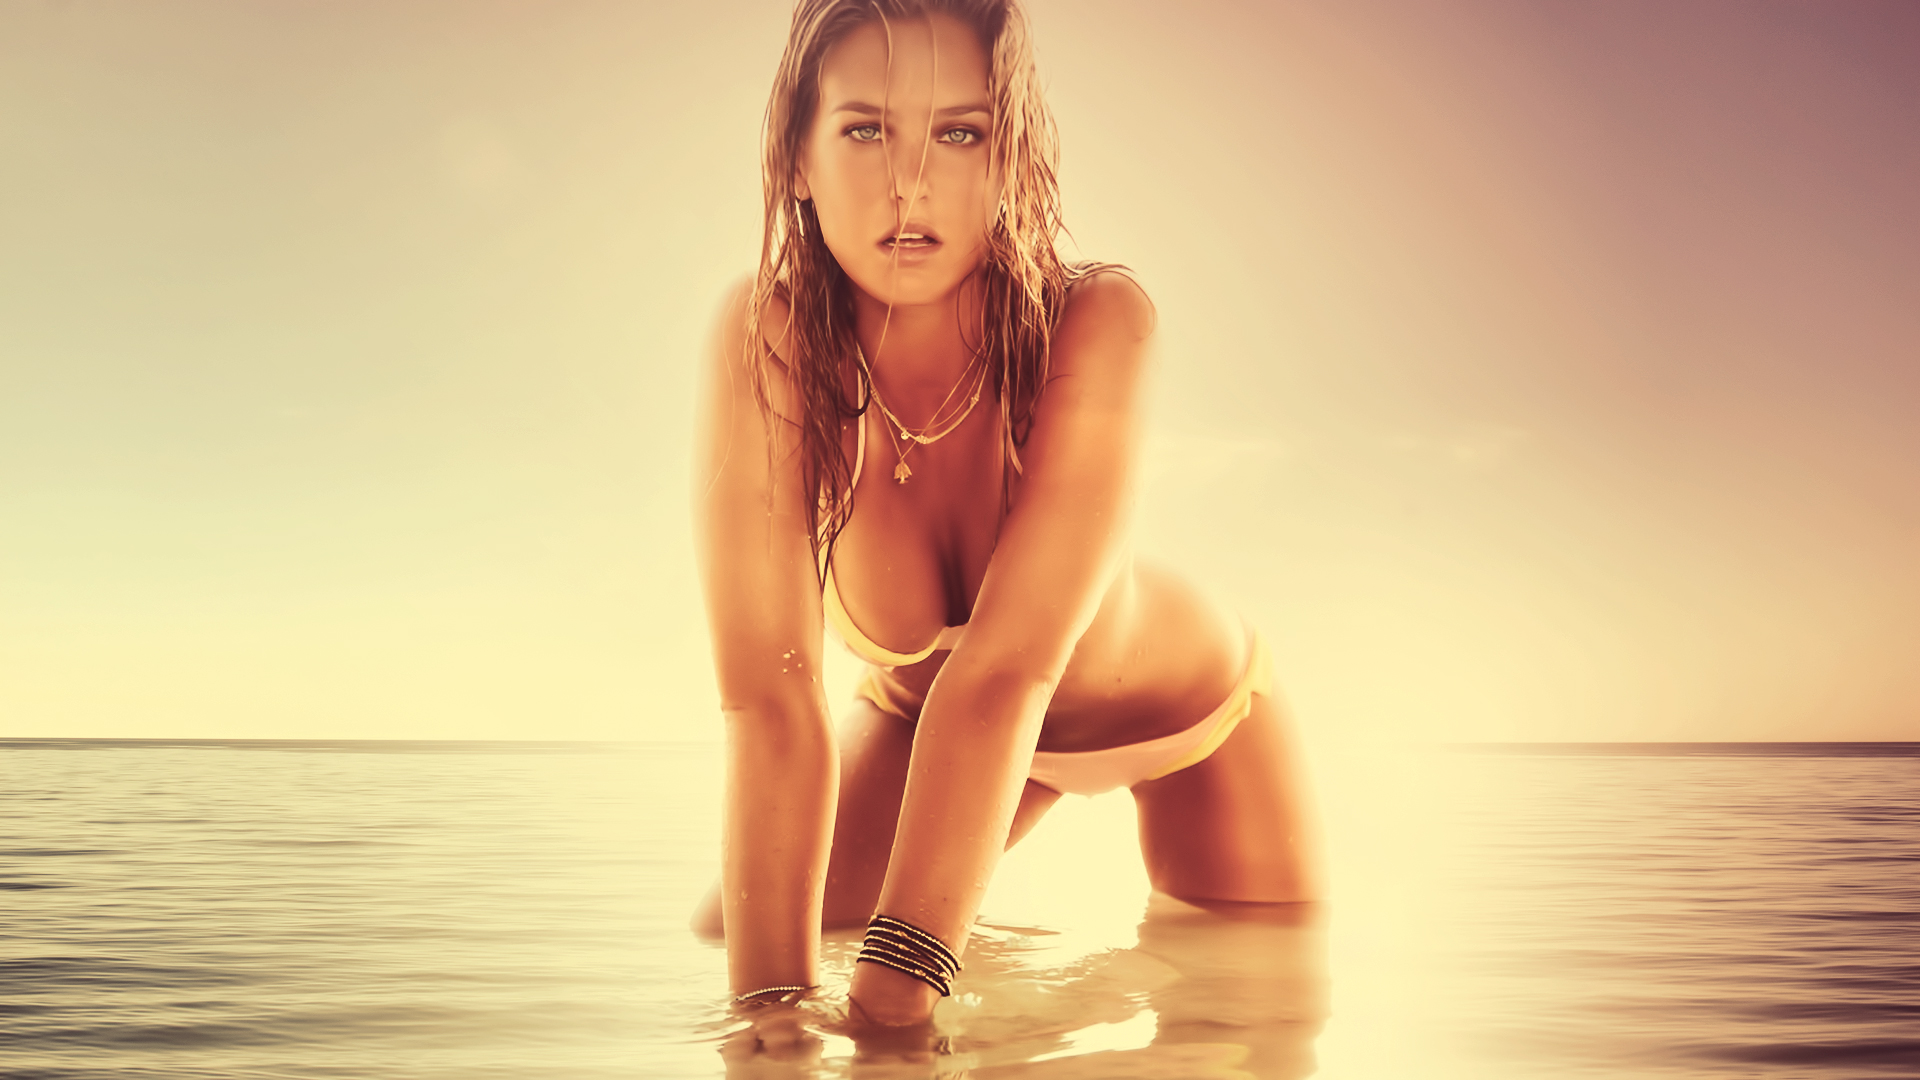 Bar Refaeli Wallpaper by iamsointense